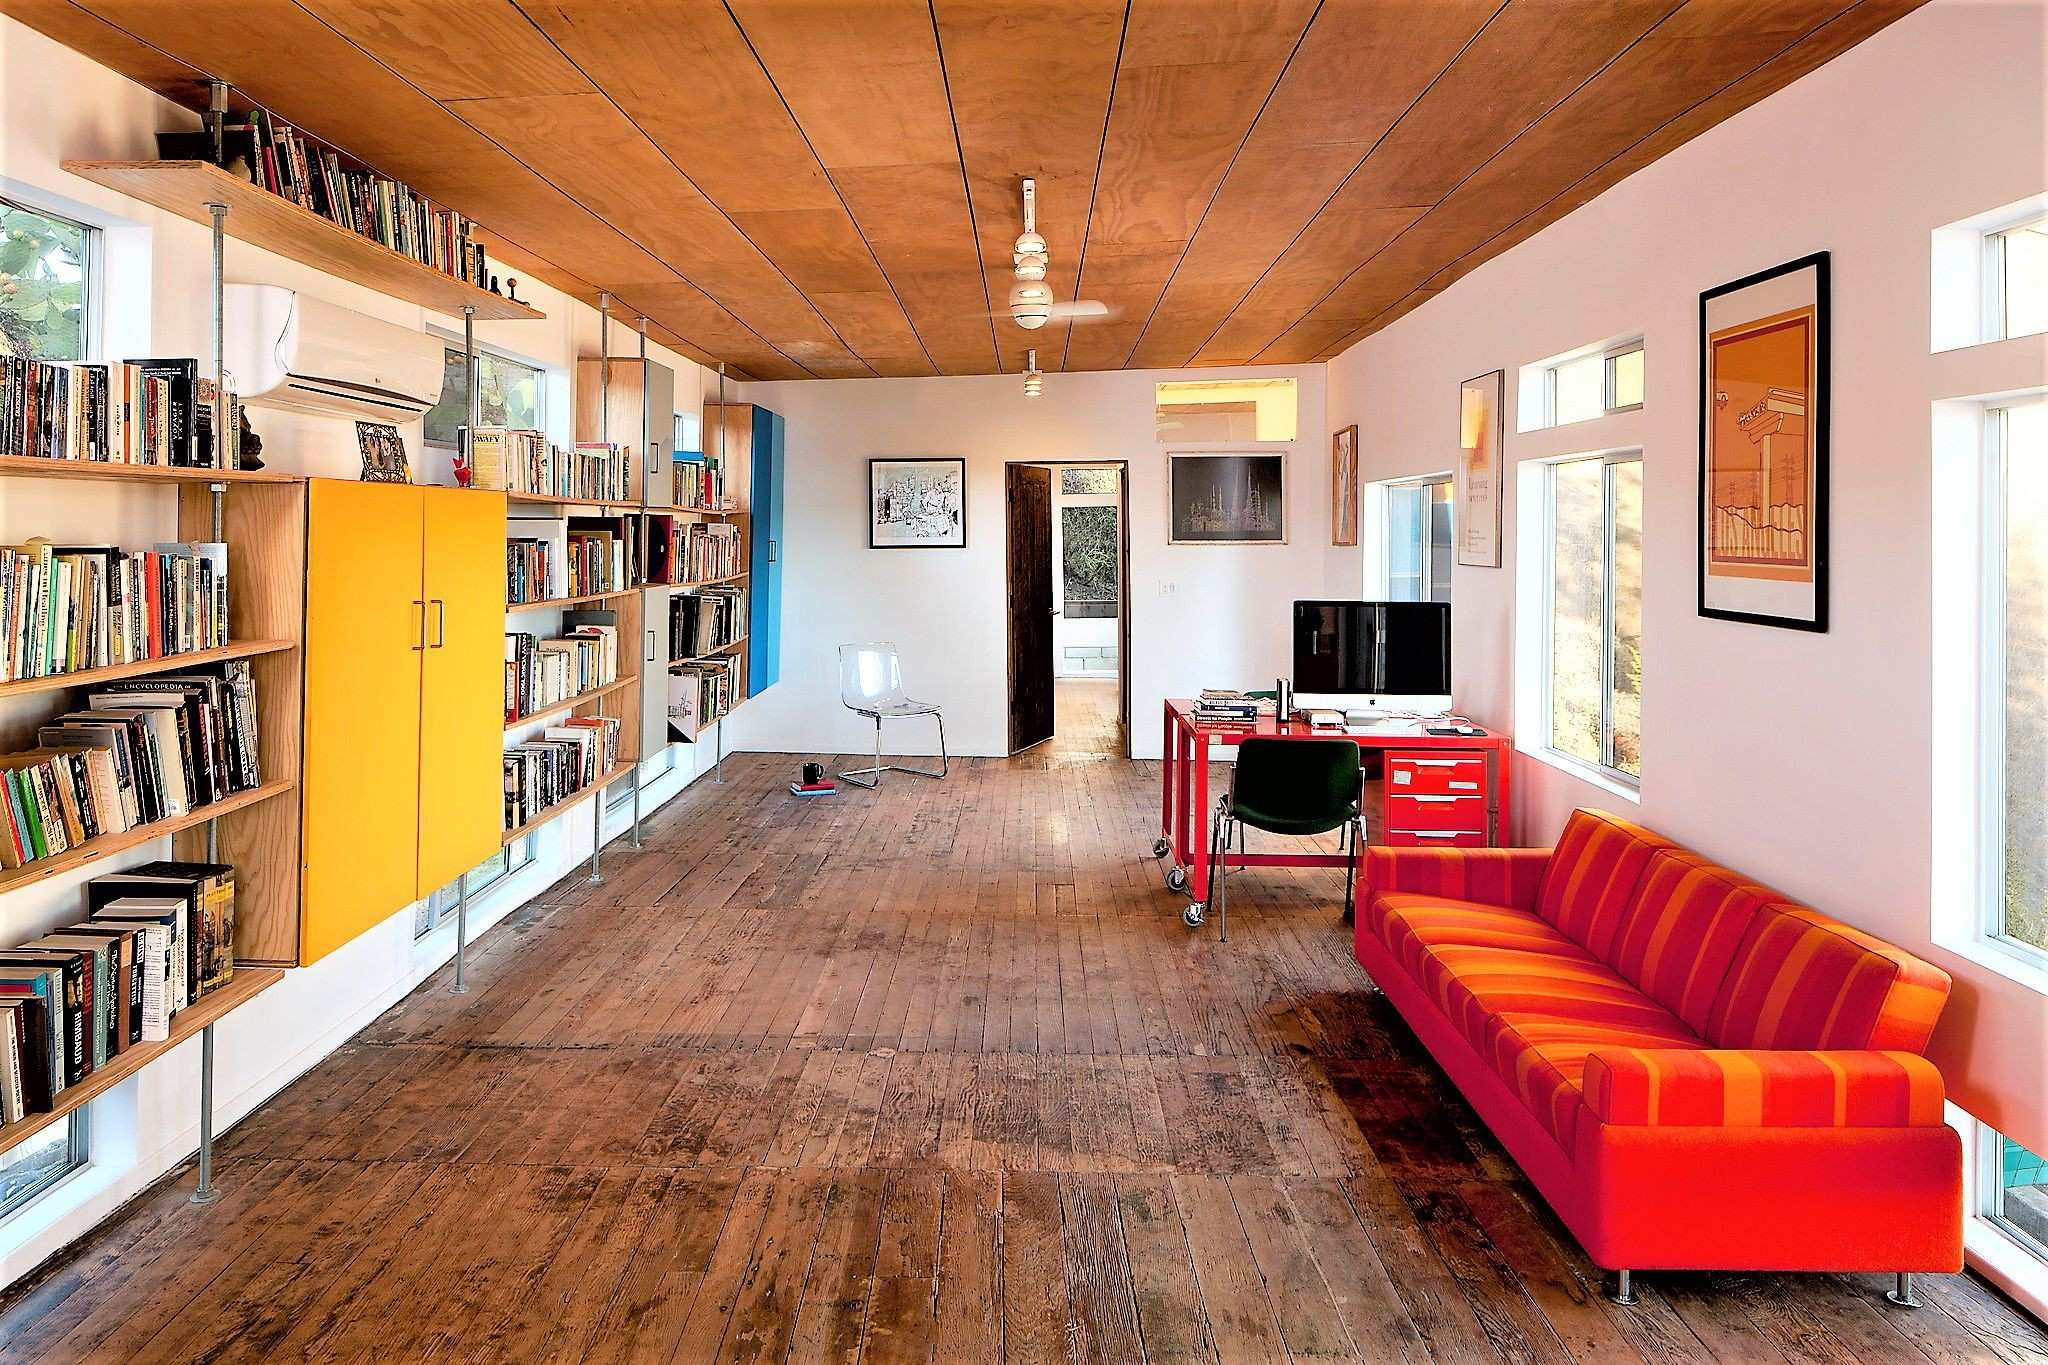 Images Of Hardwood Floor Colors Of Decorating Ideas for Living Rooms with Hardwood Floors Elegant Home with Decorating Ideas for Living Rooms with Hardwood Floors Fresh Wood Flooring and Your Home S Resale